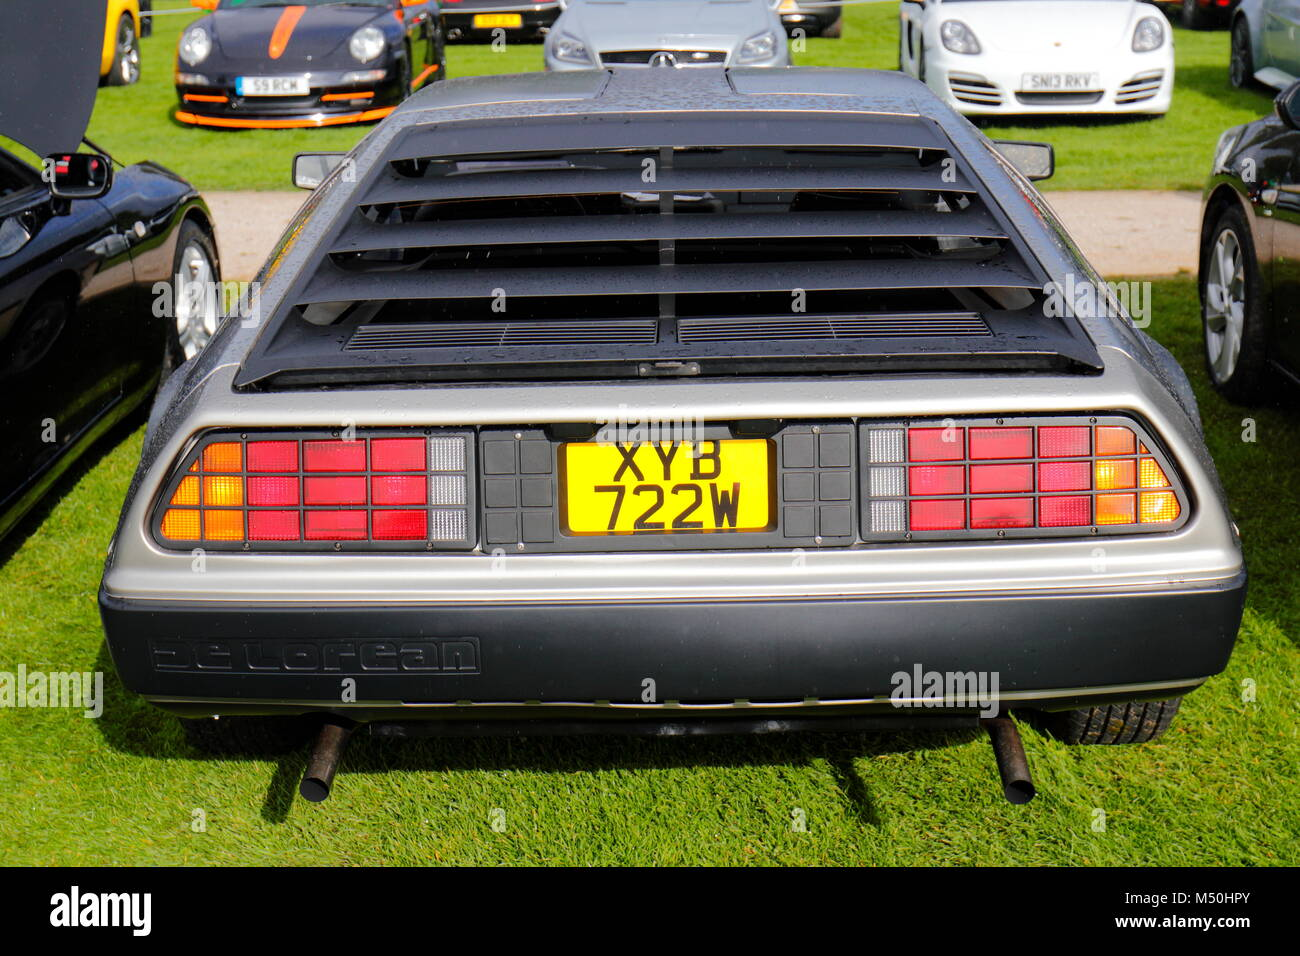 A De Lorean car on display at Lotherton Hall near Leeds as part of the Super Cars In The Park annual event - Stock Image